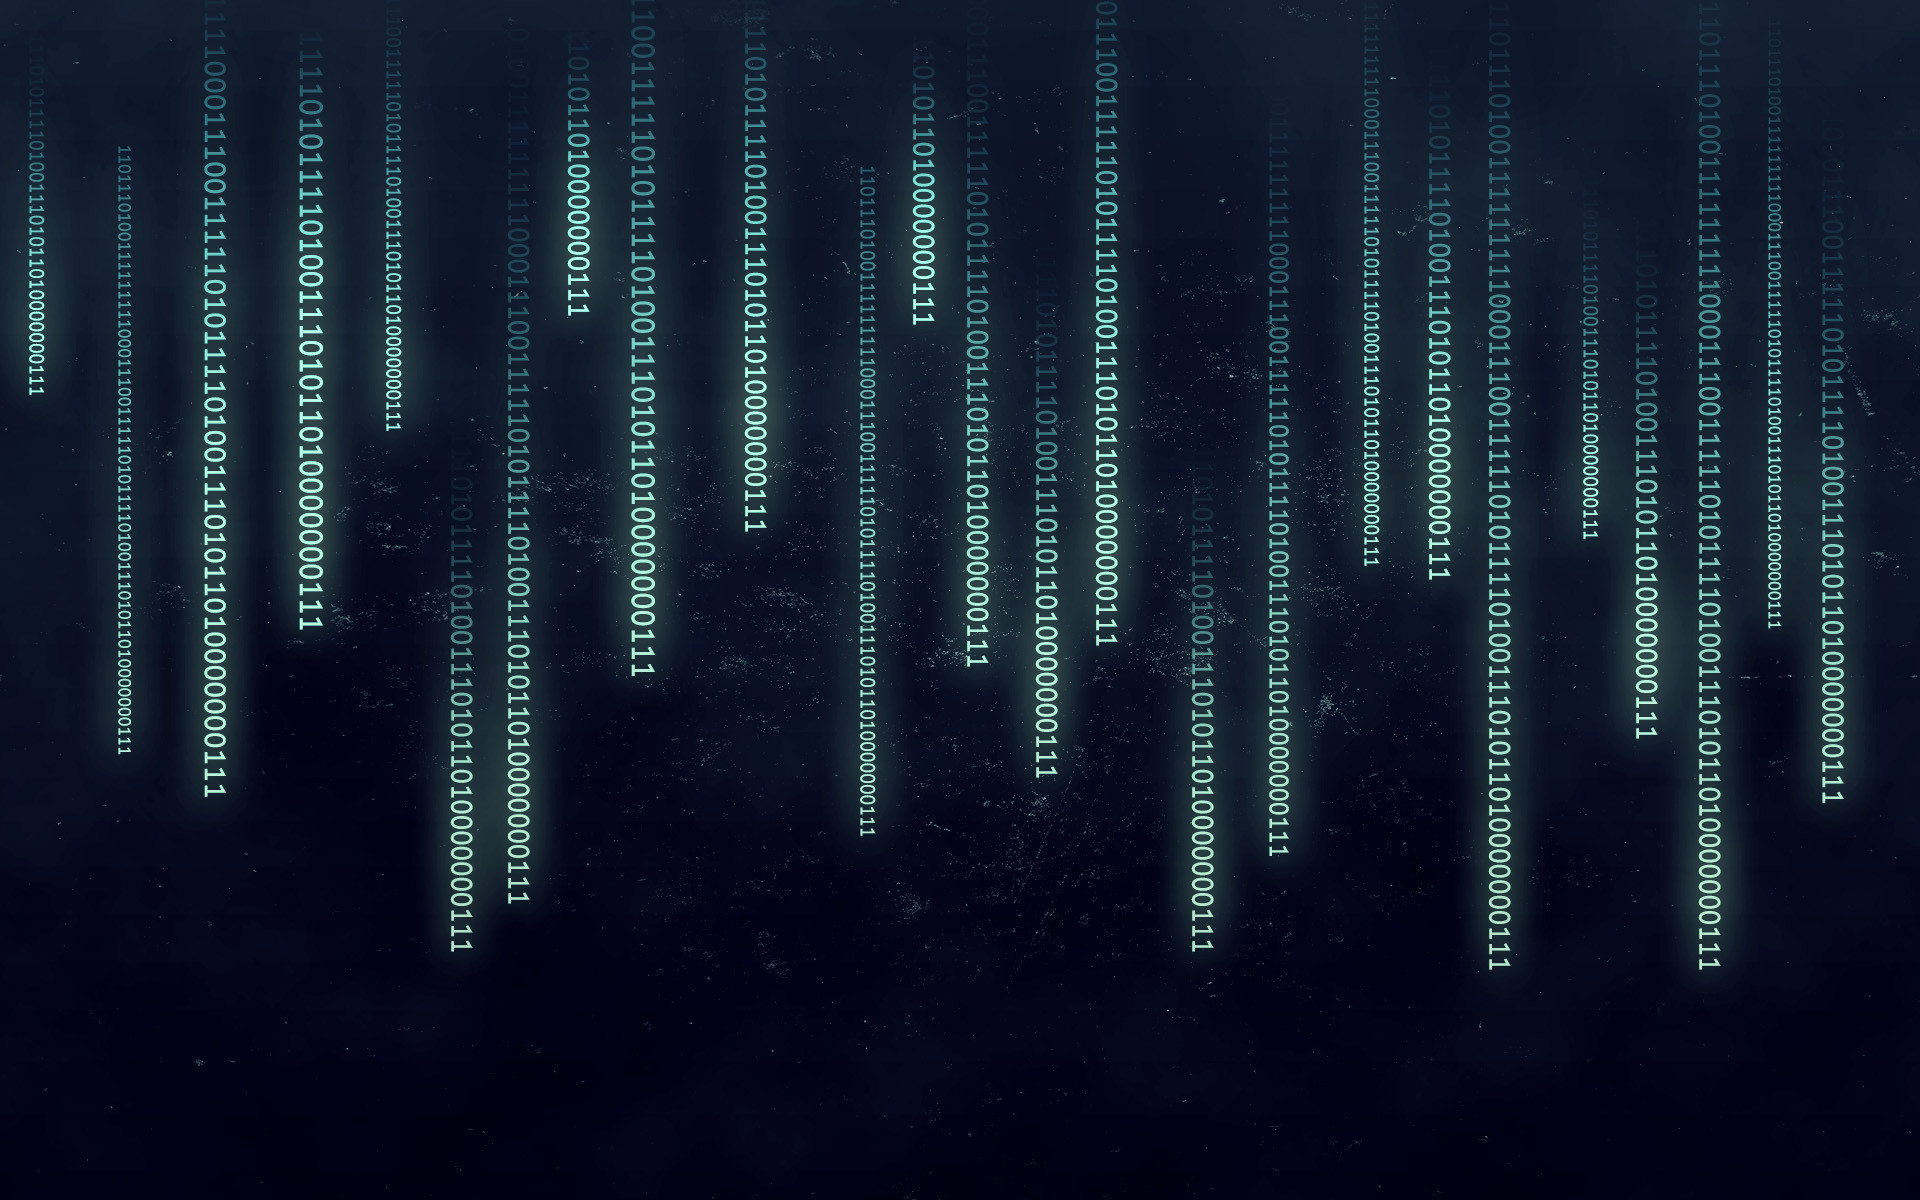 28 Binary HD Wallpapers | Backgrounds – Wallpaper Abyss